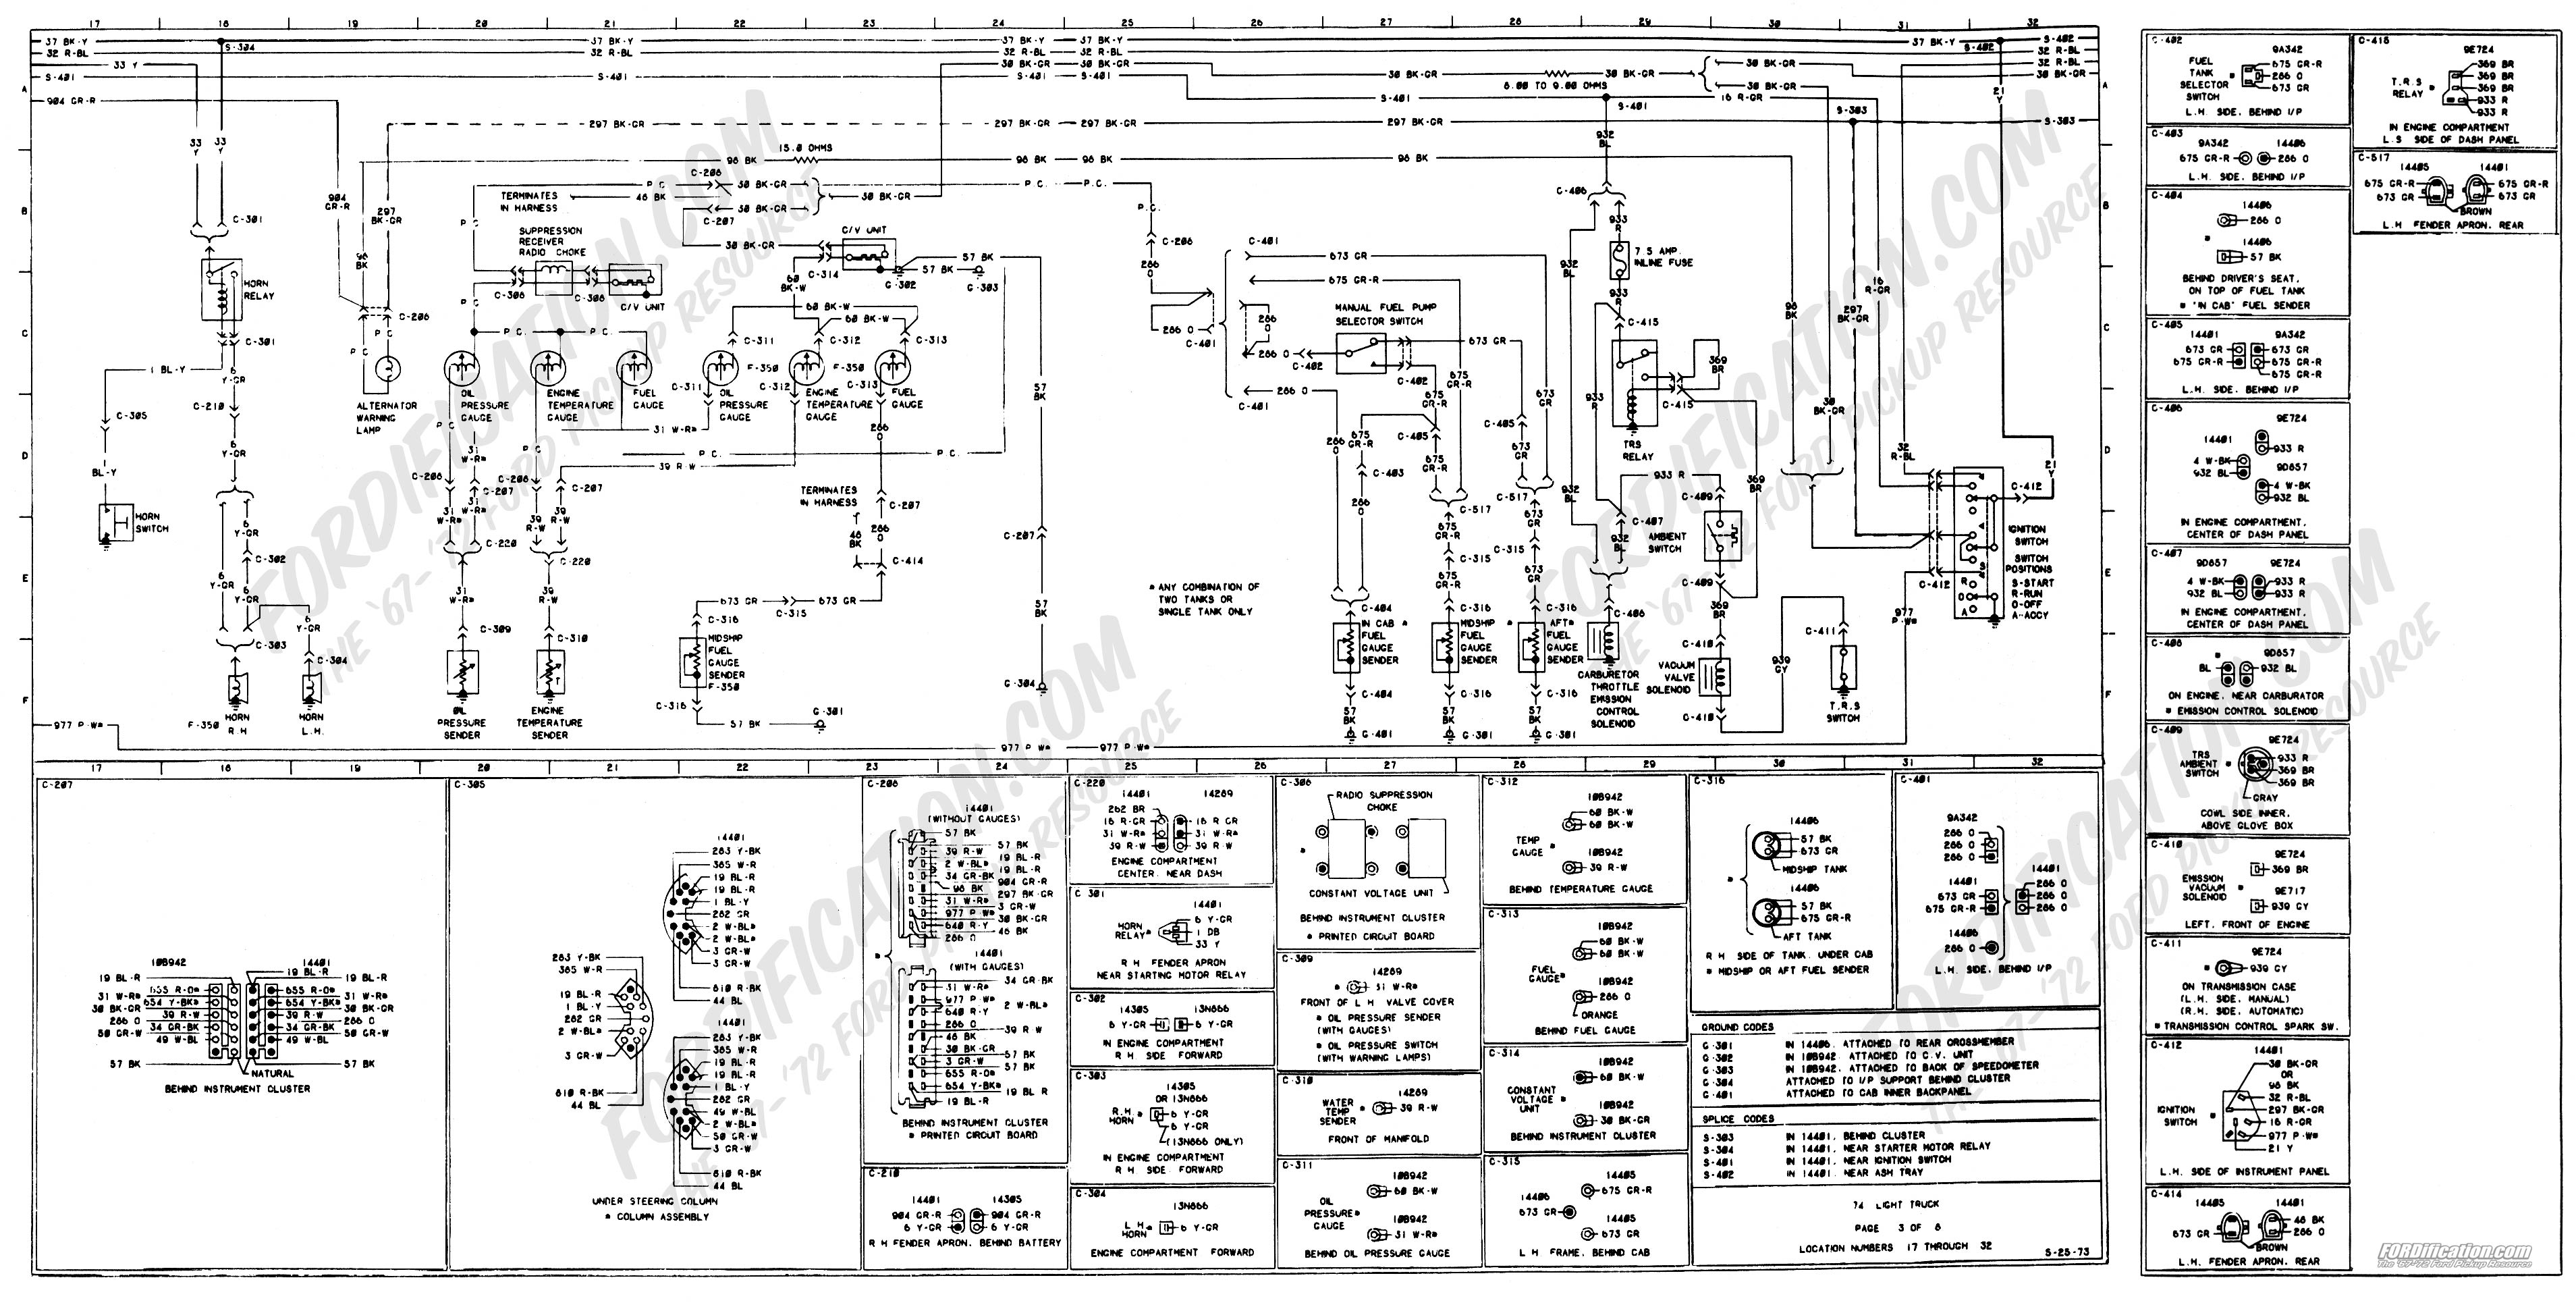 1973 1979 Ford Truck Wiring Diagrams & Schematics Fordification Net 1990 Ford  F-250 Wiring Diagram Ford F250 Ignition Wiring Diagram